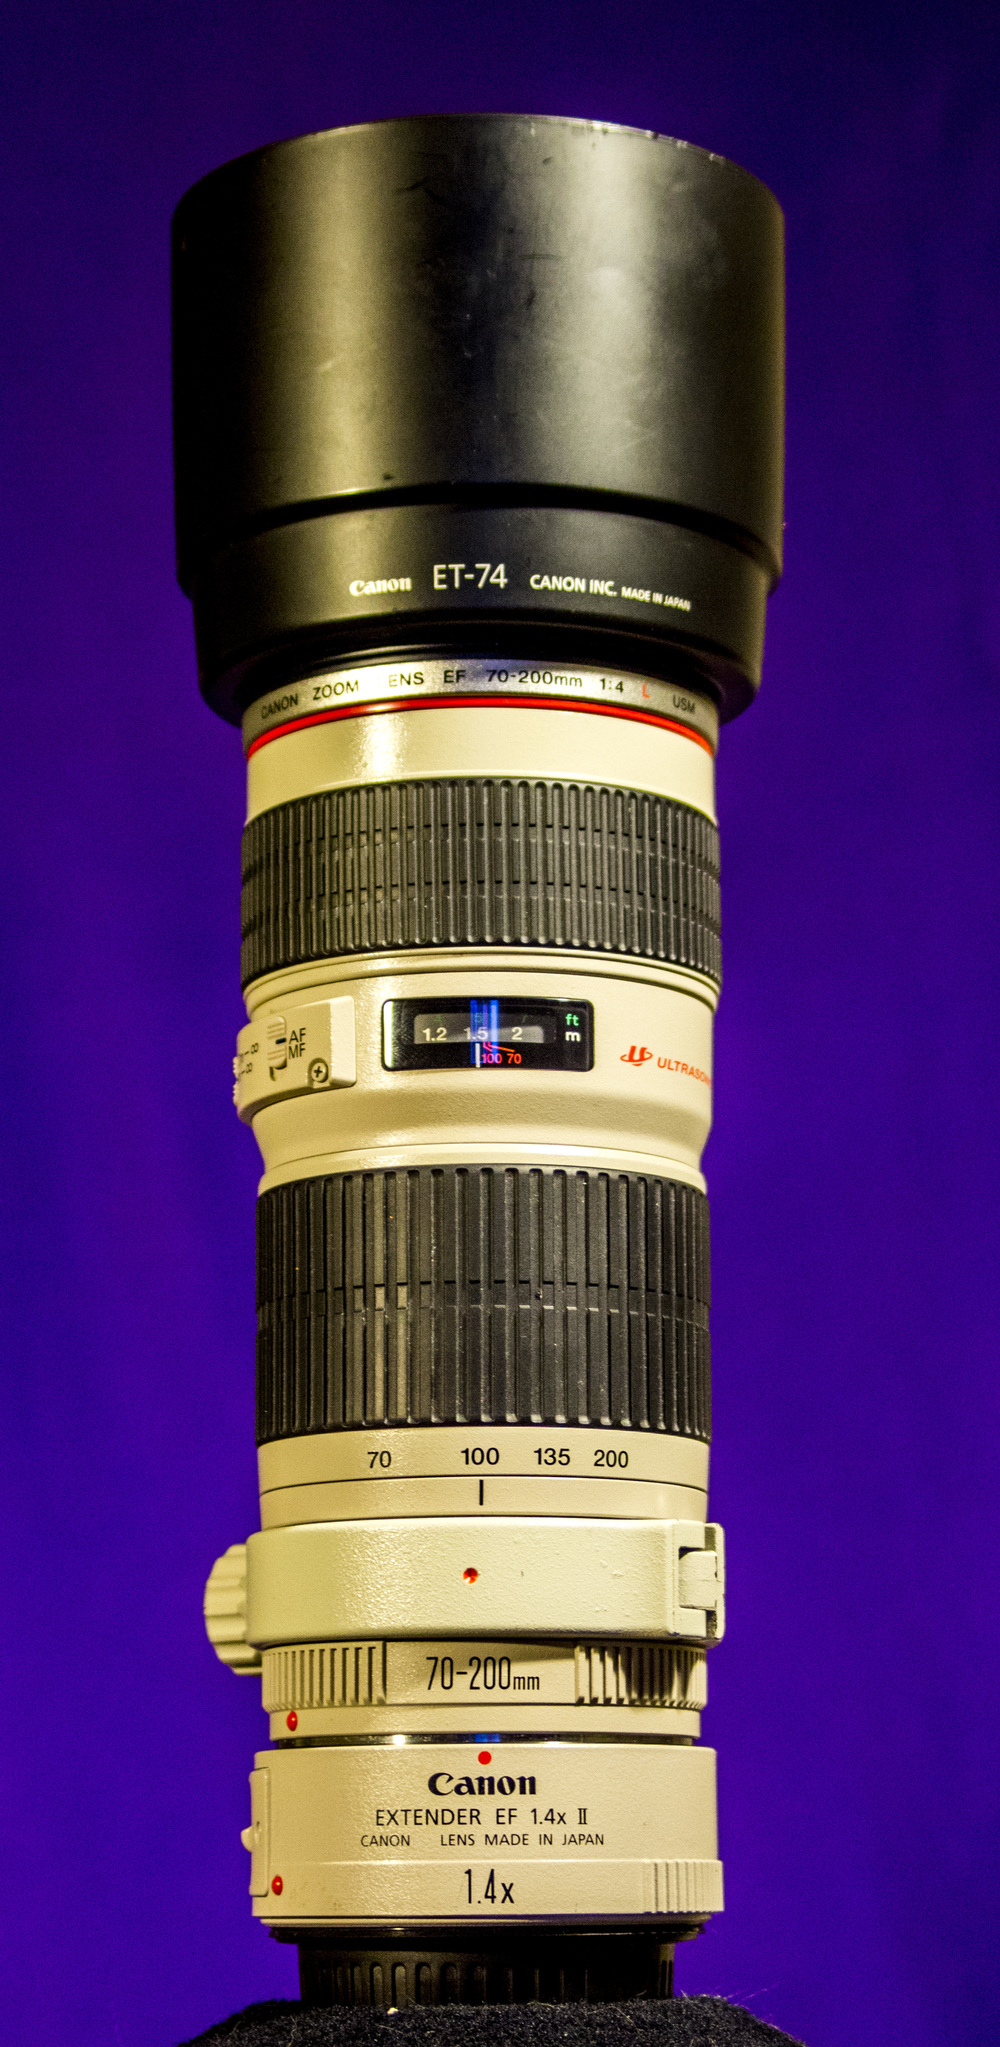 Canon EF 70-200 f4L USM (with 1.4 Extender II)  Lightweight, and beautiful glass. The extender helps get really close-up images.